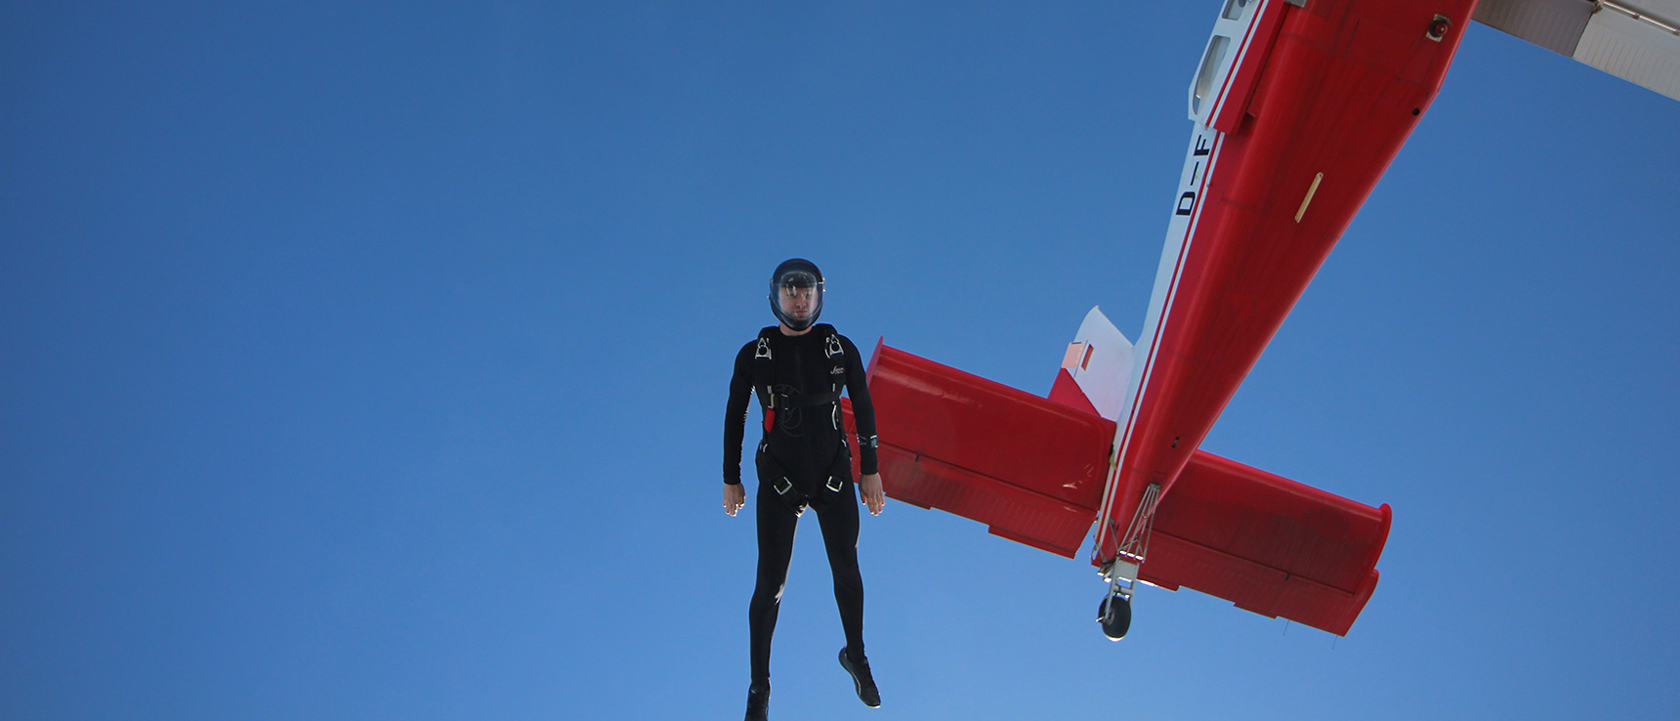 Skydiving at over 500 km per hour